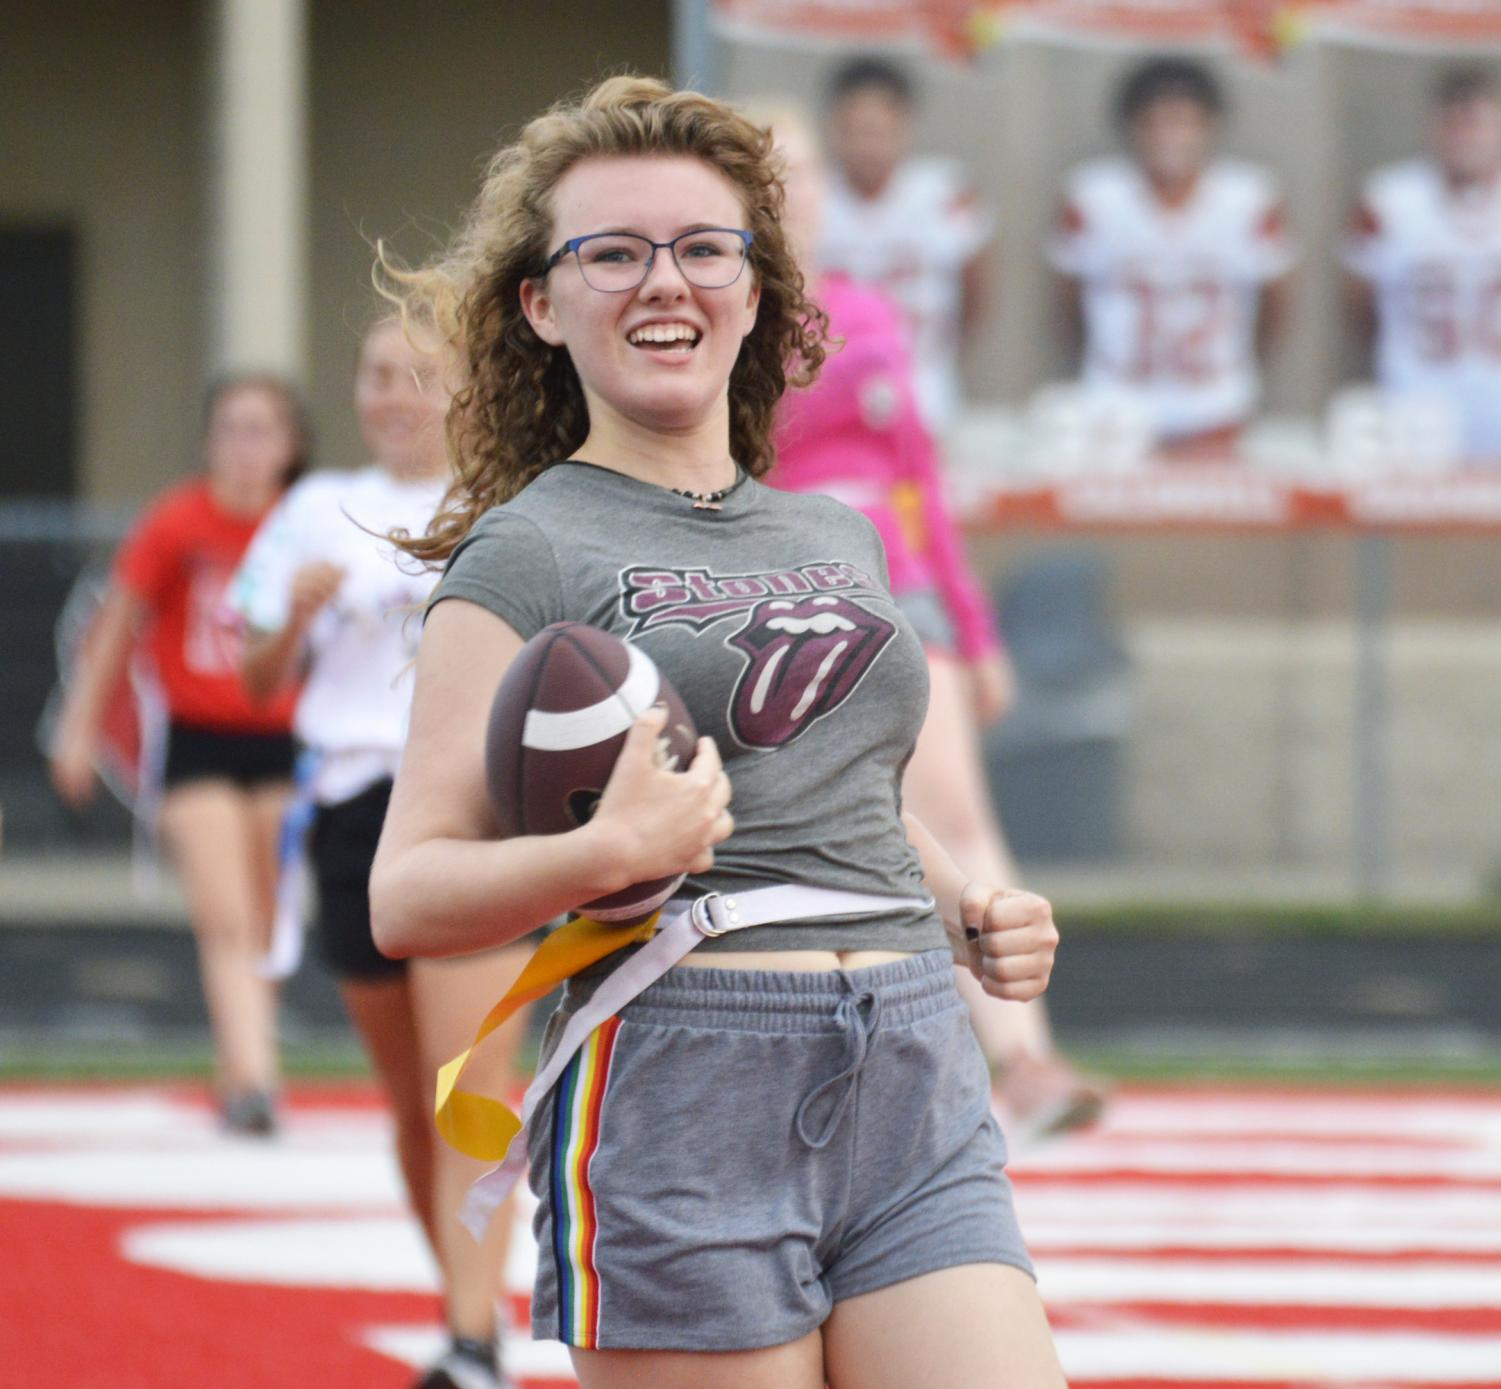 Junior Alexa Haines celebrates after scoring a touchdown for the junior powder-puff team on Tuesday, Sep. 17.